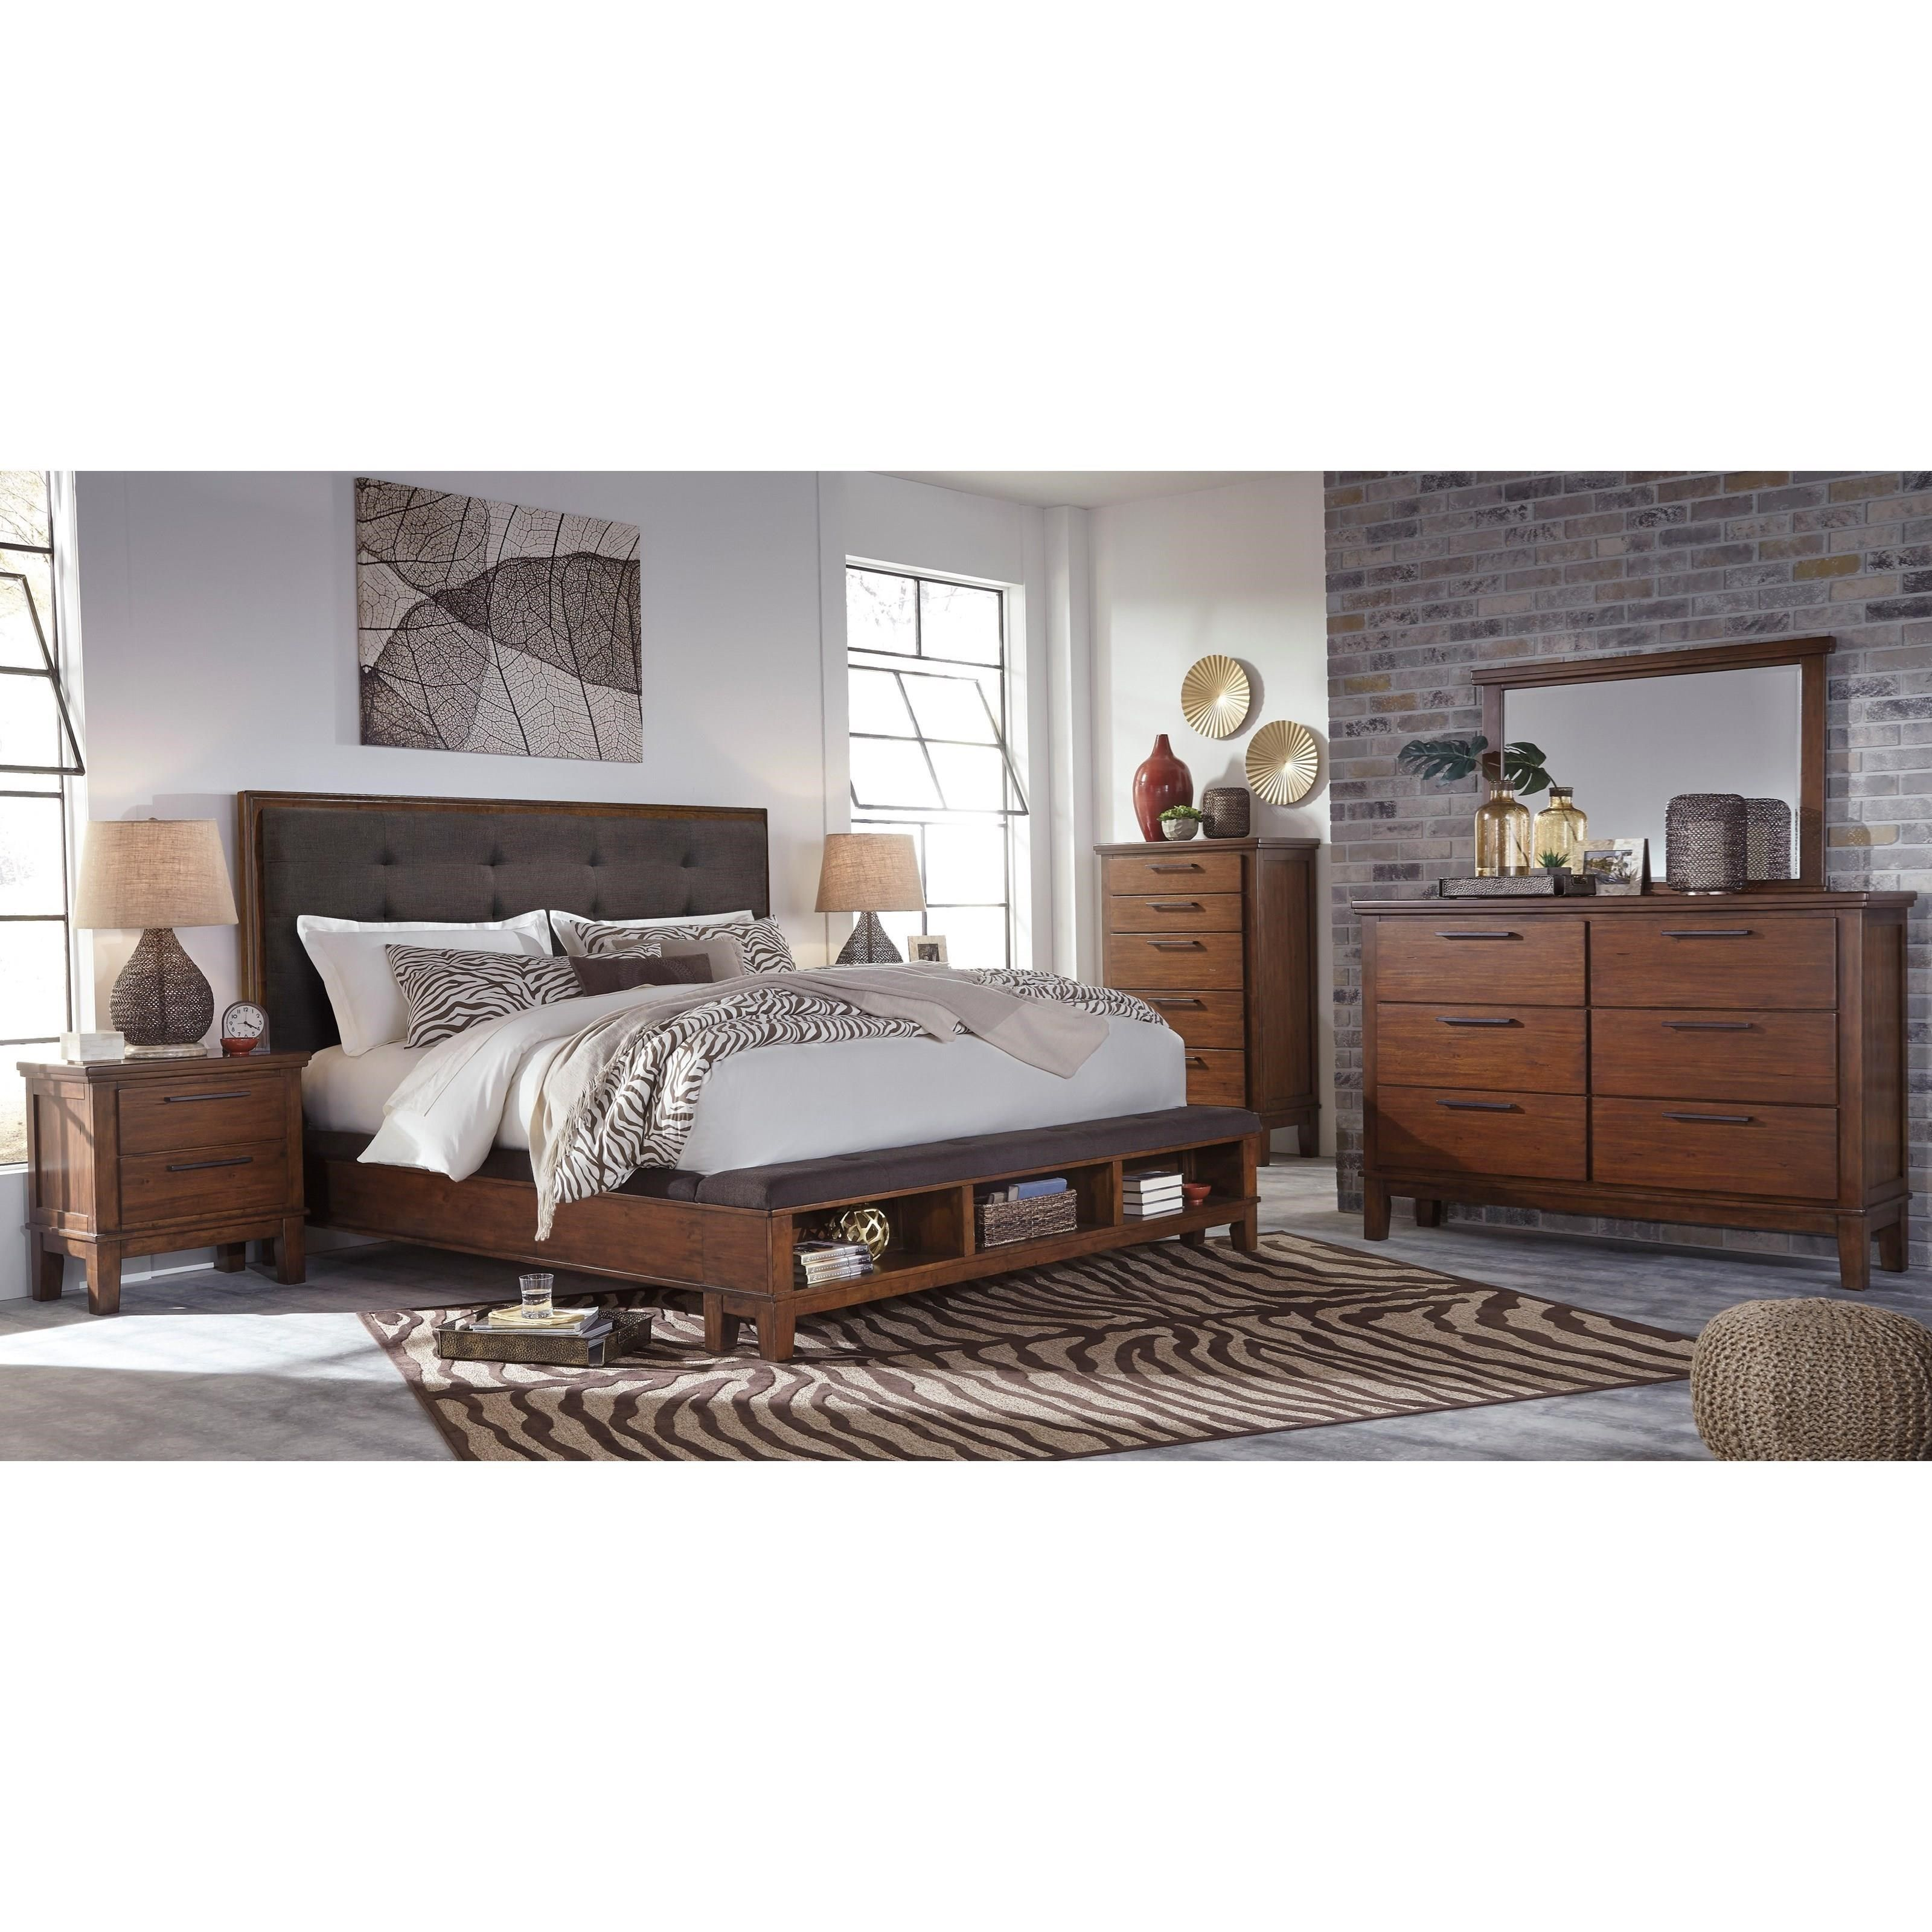 Ralene Queen 5 Piece Bedroom Group by Signature Design by